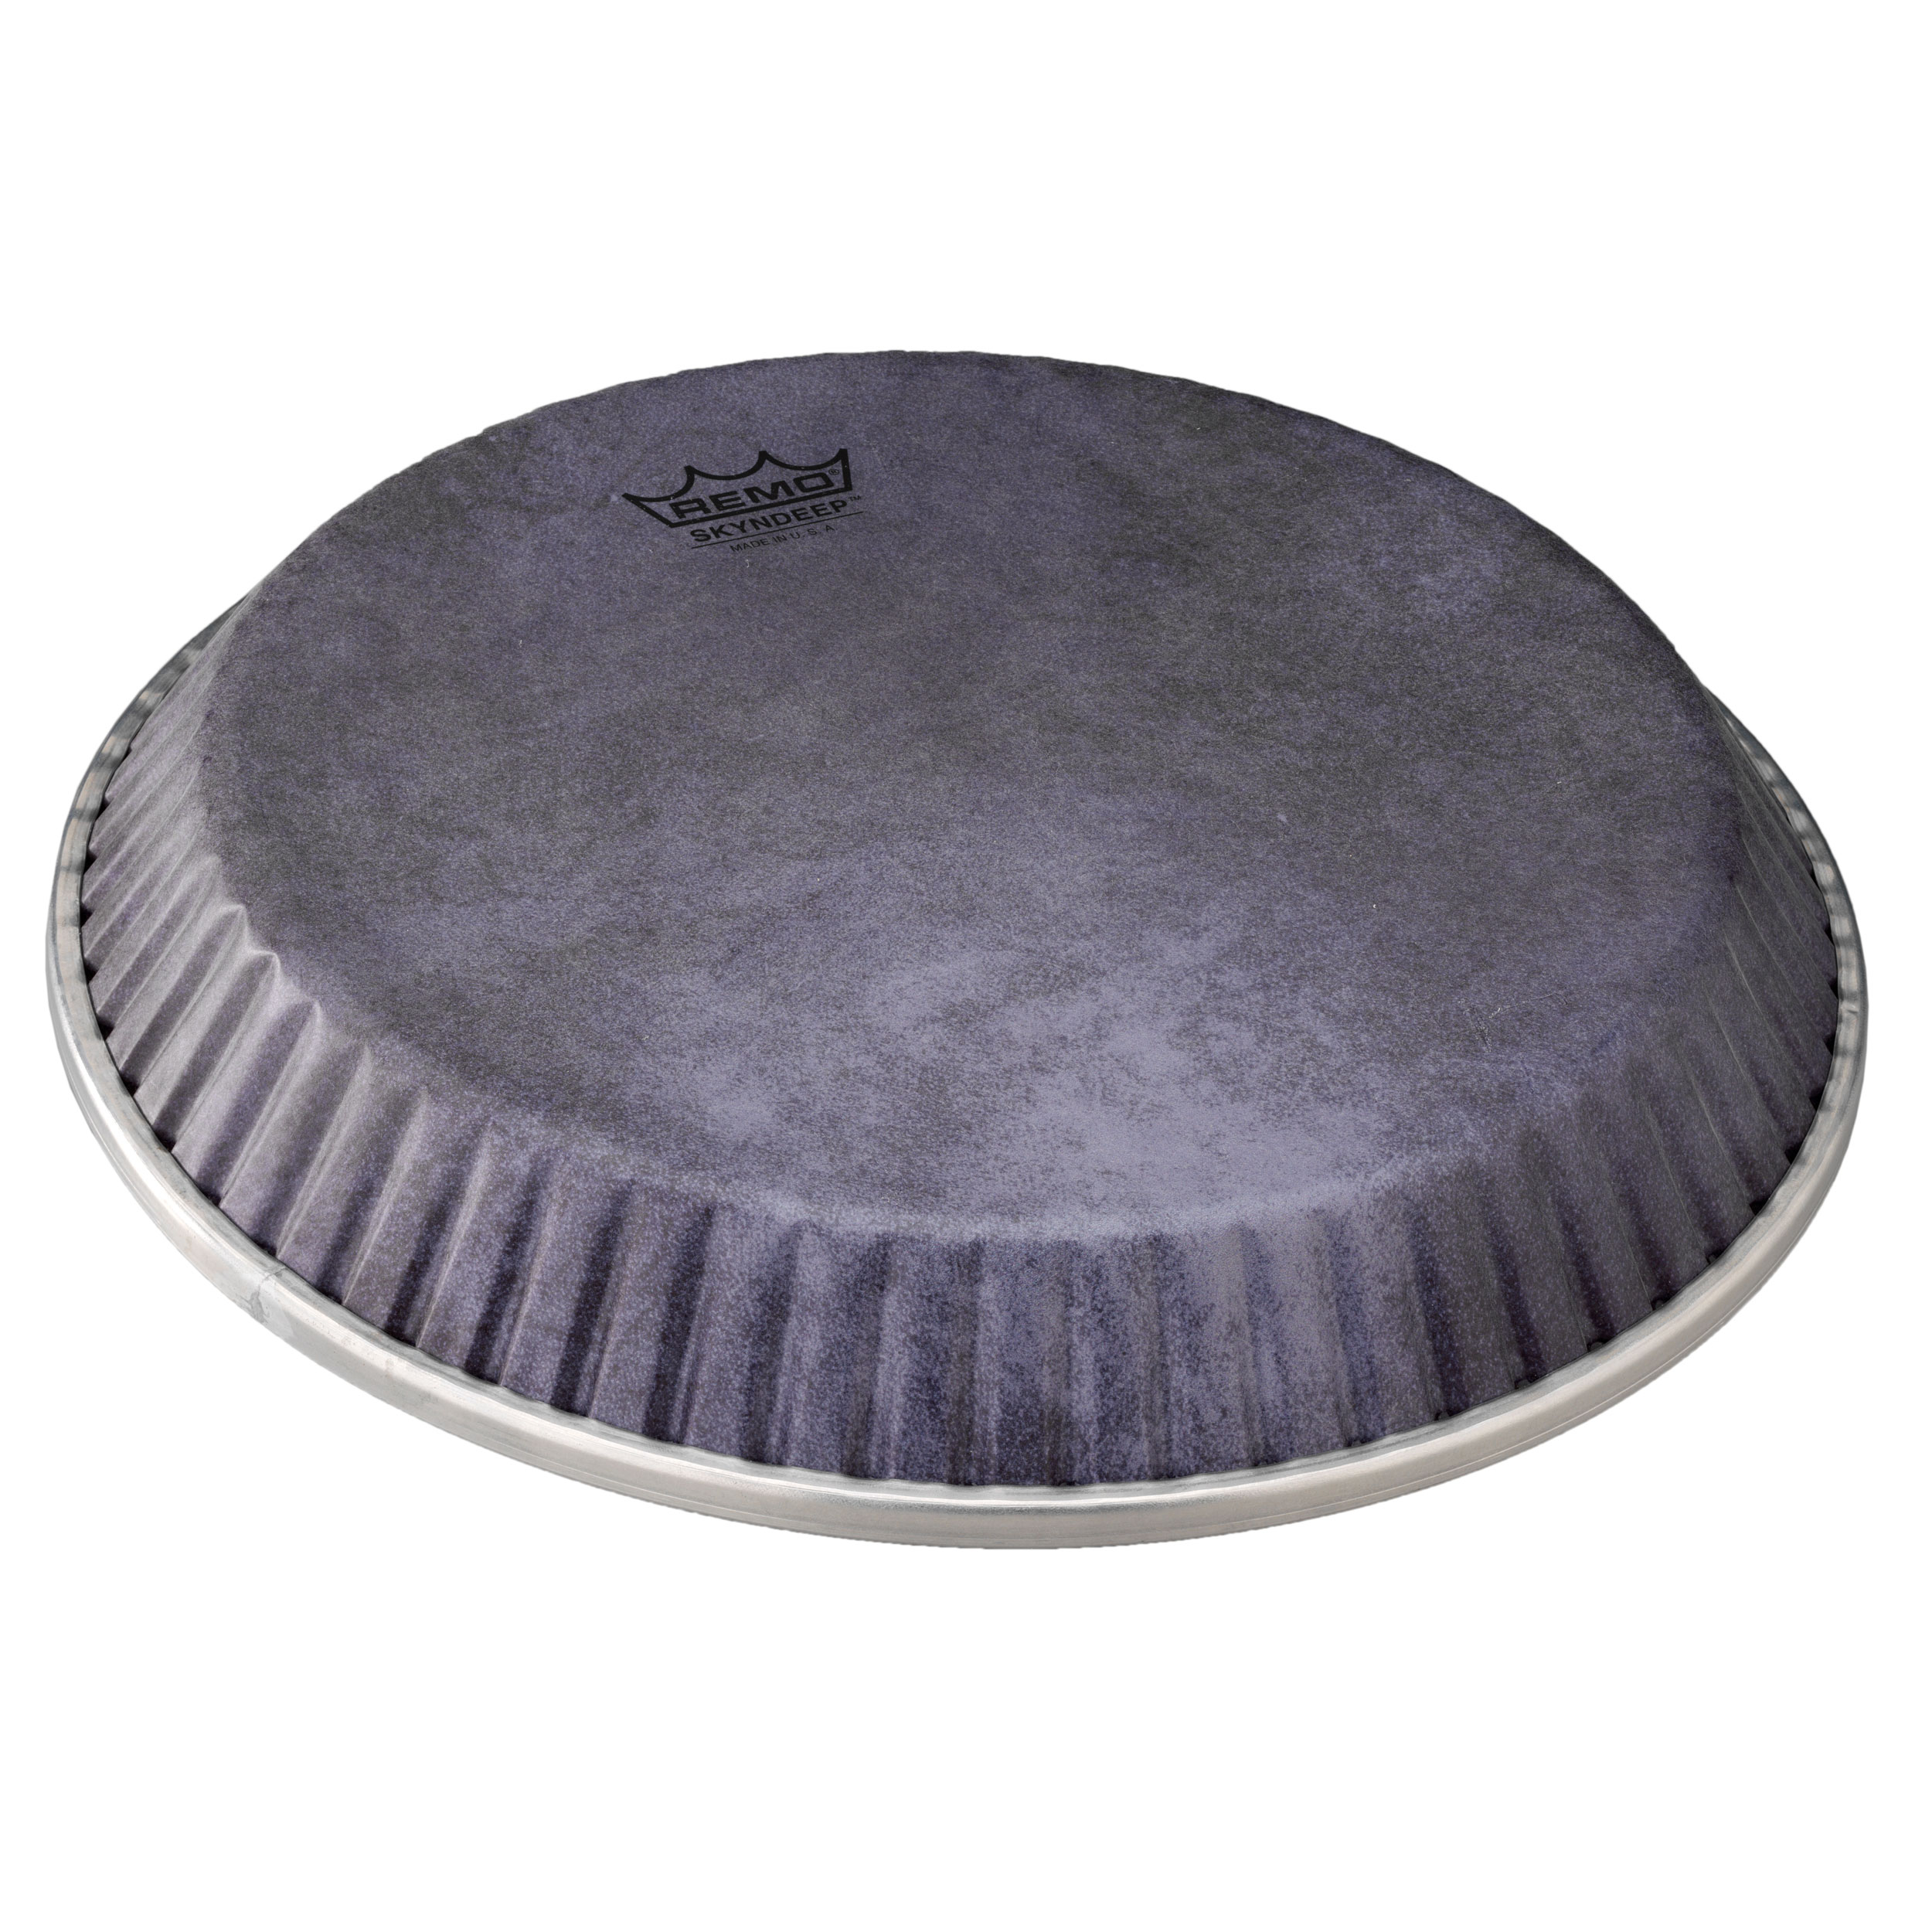 """Remo 10.75"""" Symmetry Skyndeep Conga Drum Head (D1 Collar) with Black Calfskin Graphic"""